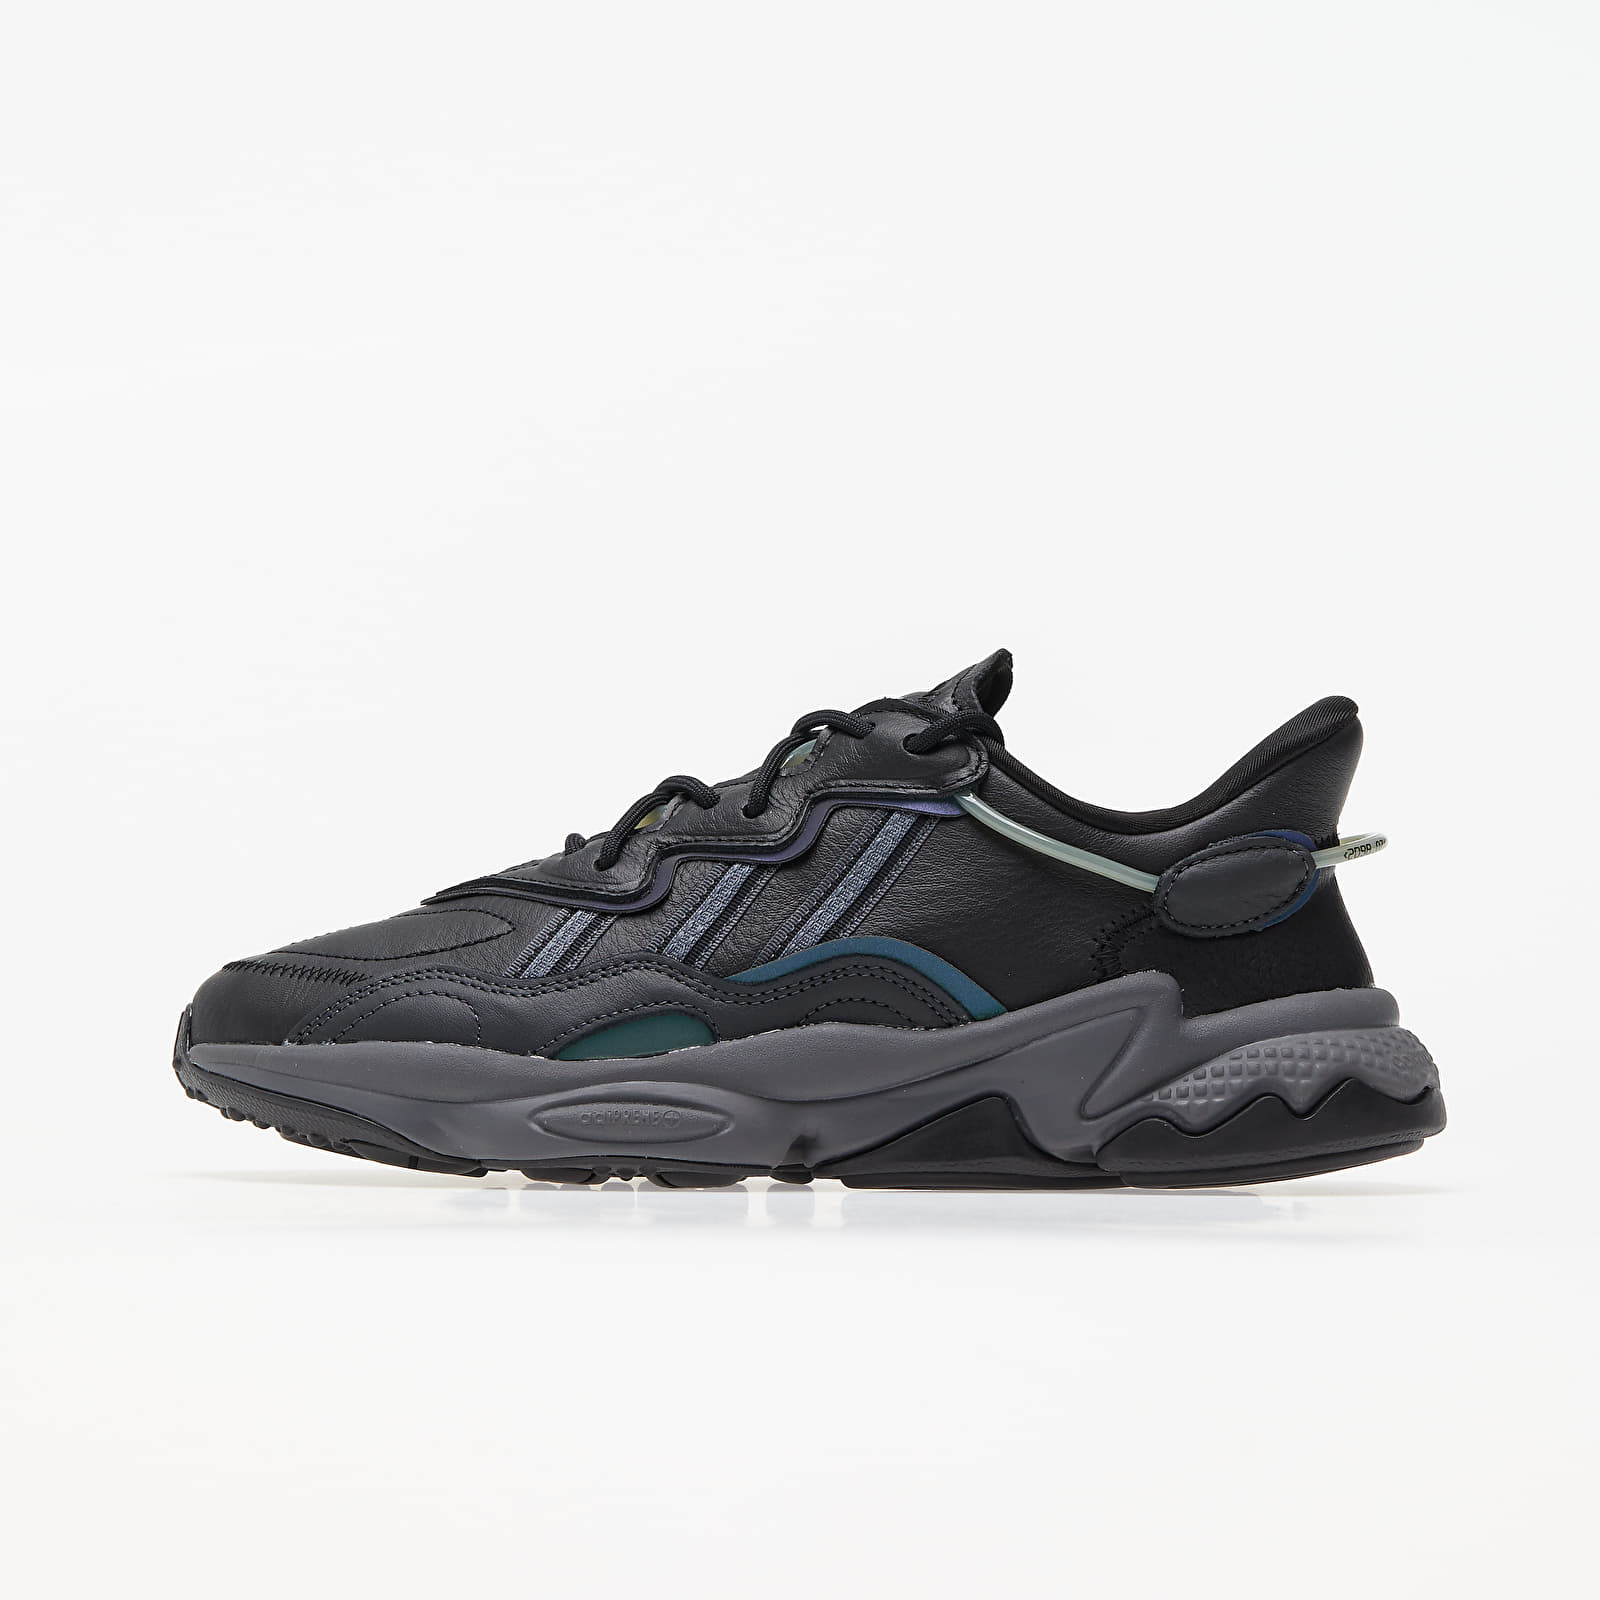 adidas Ozweego Core Black/ Grey Four/ Onix EE7004